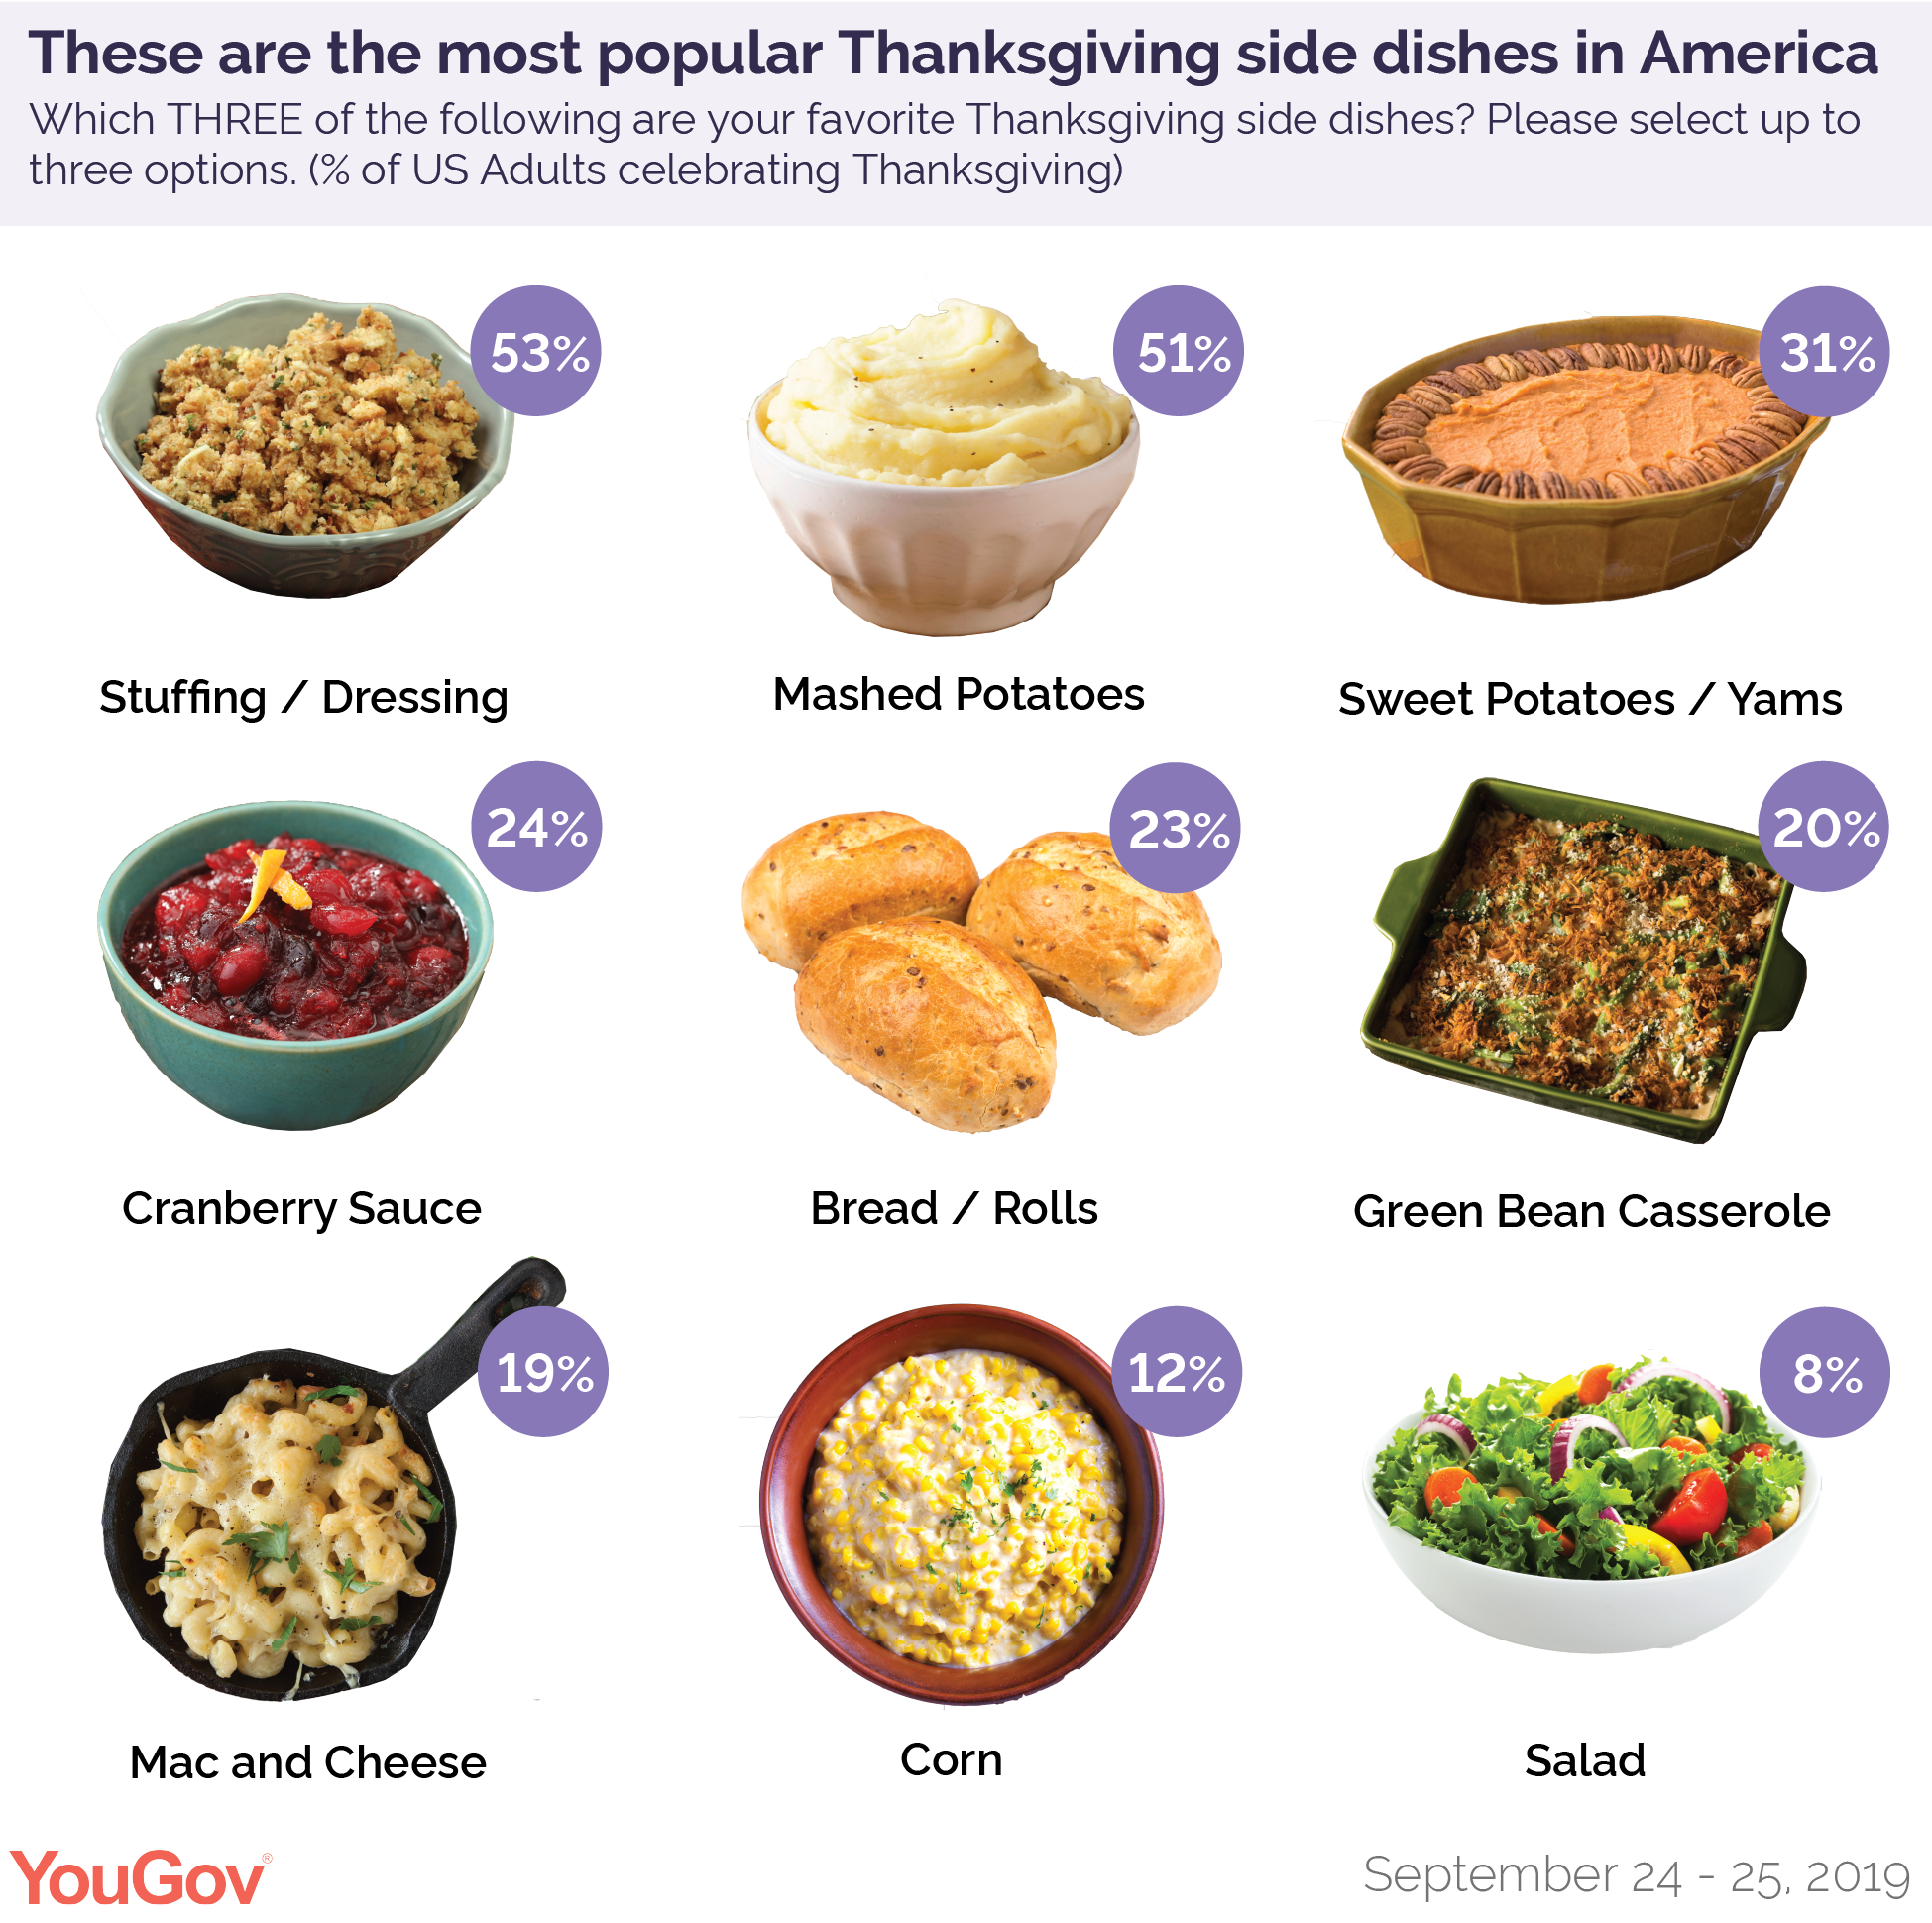 These are the most popular Thanksgiving side dishes in America